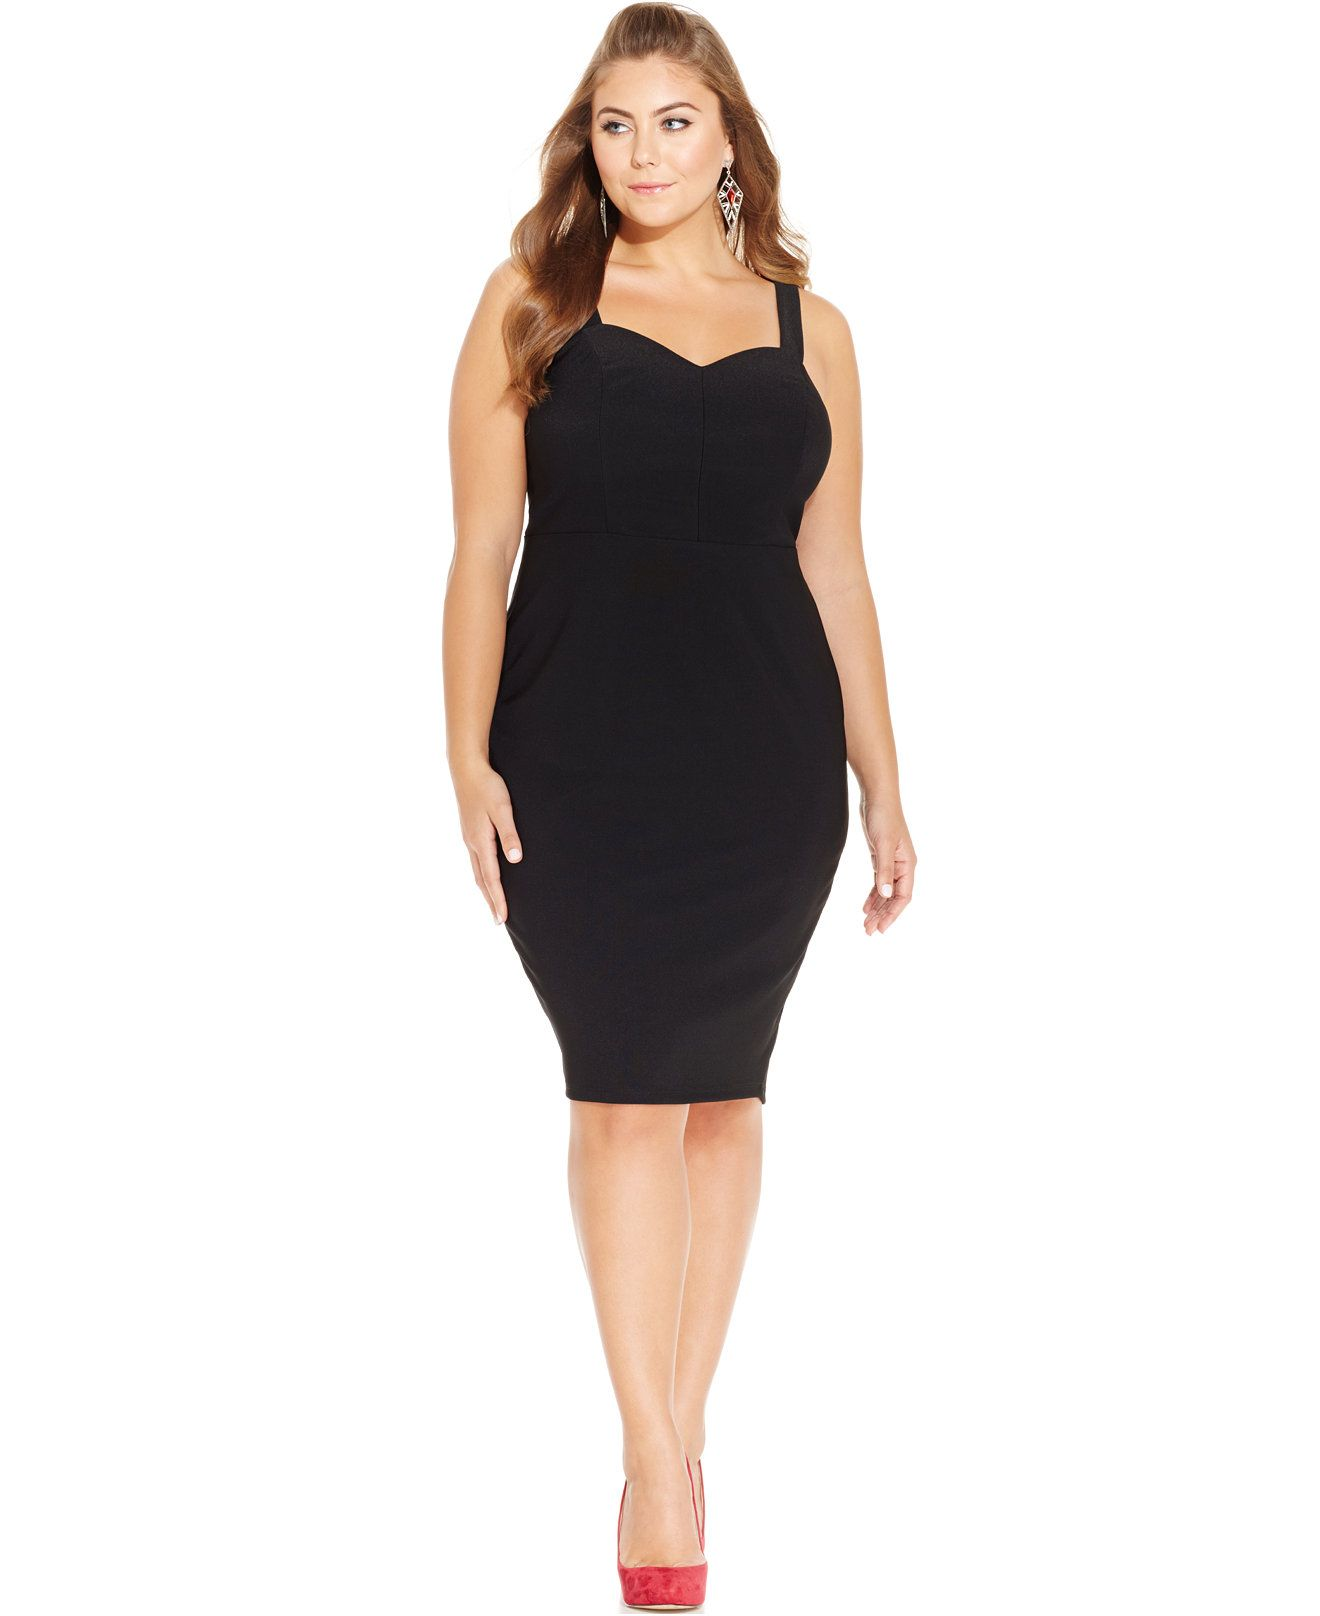 f66808178f935 Trixxi Plus Size Sweetheart Bodycon Dress - Trendy Plus Sizes - Plus Sizes  - Macy s